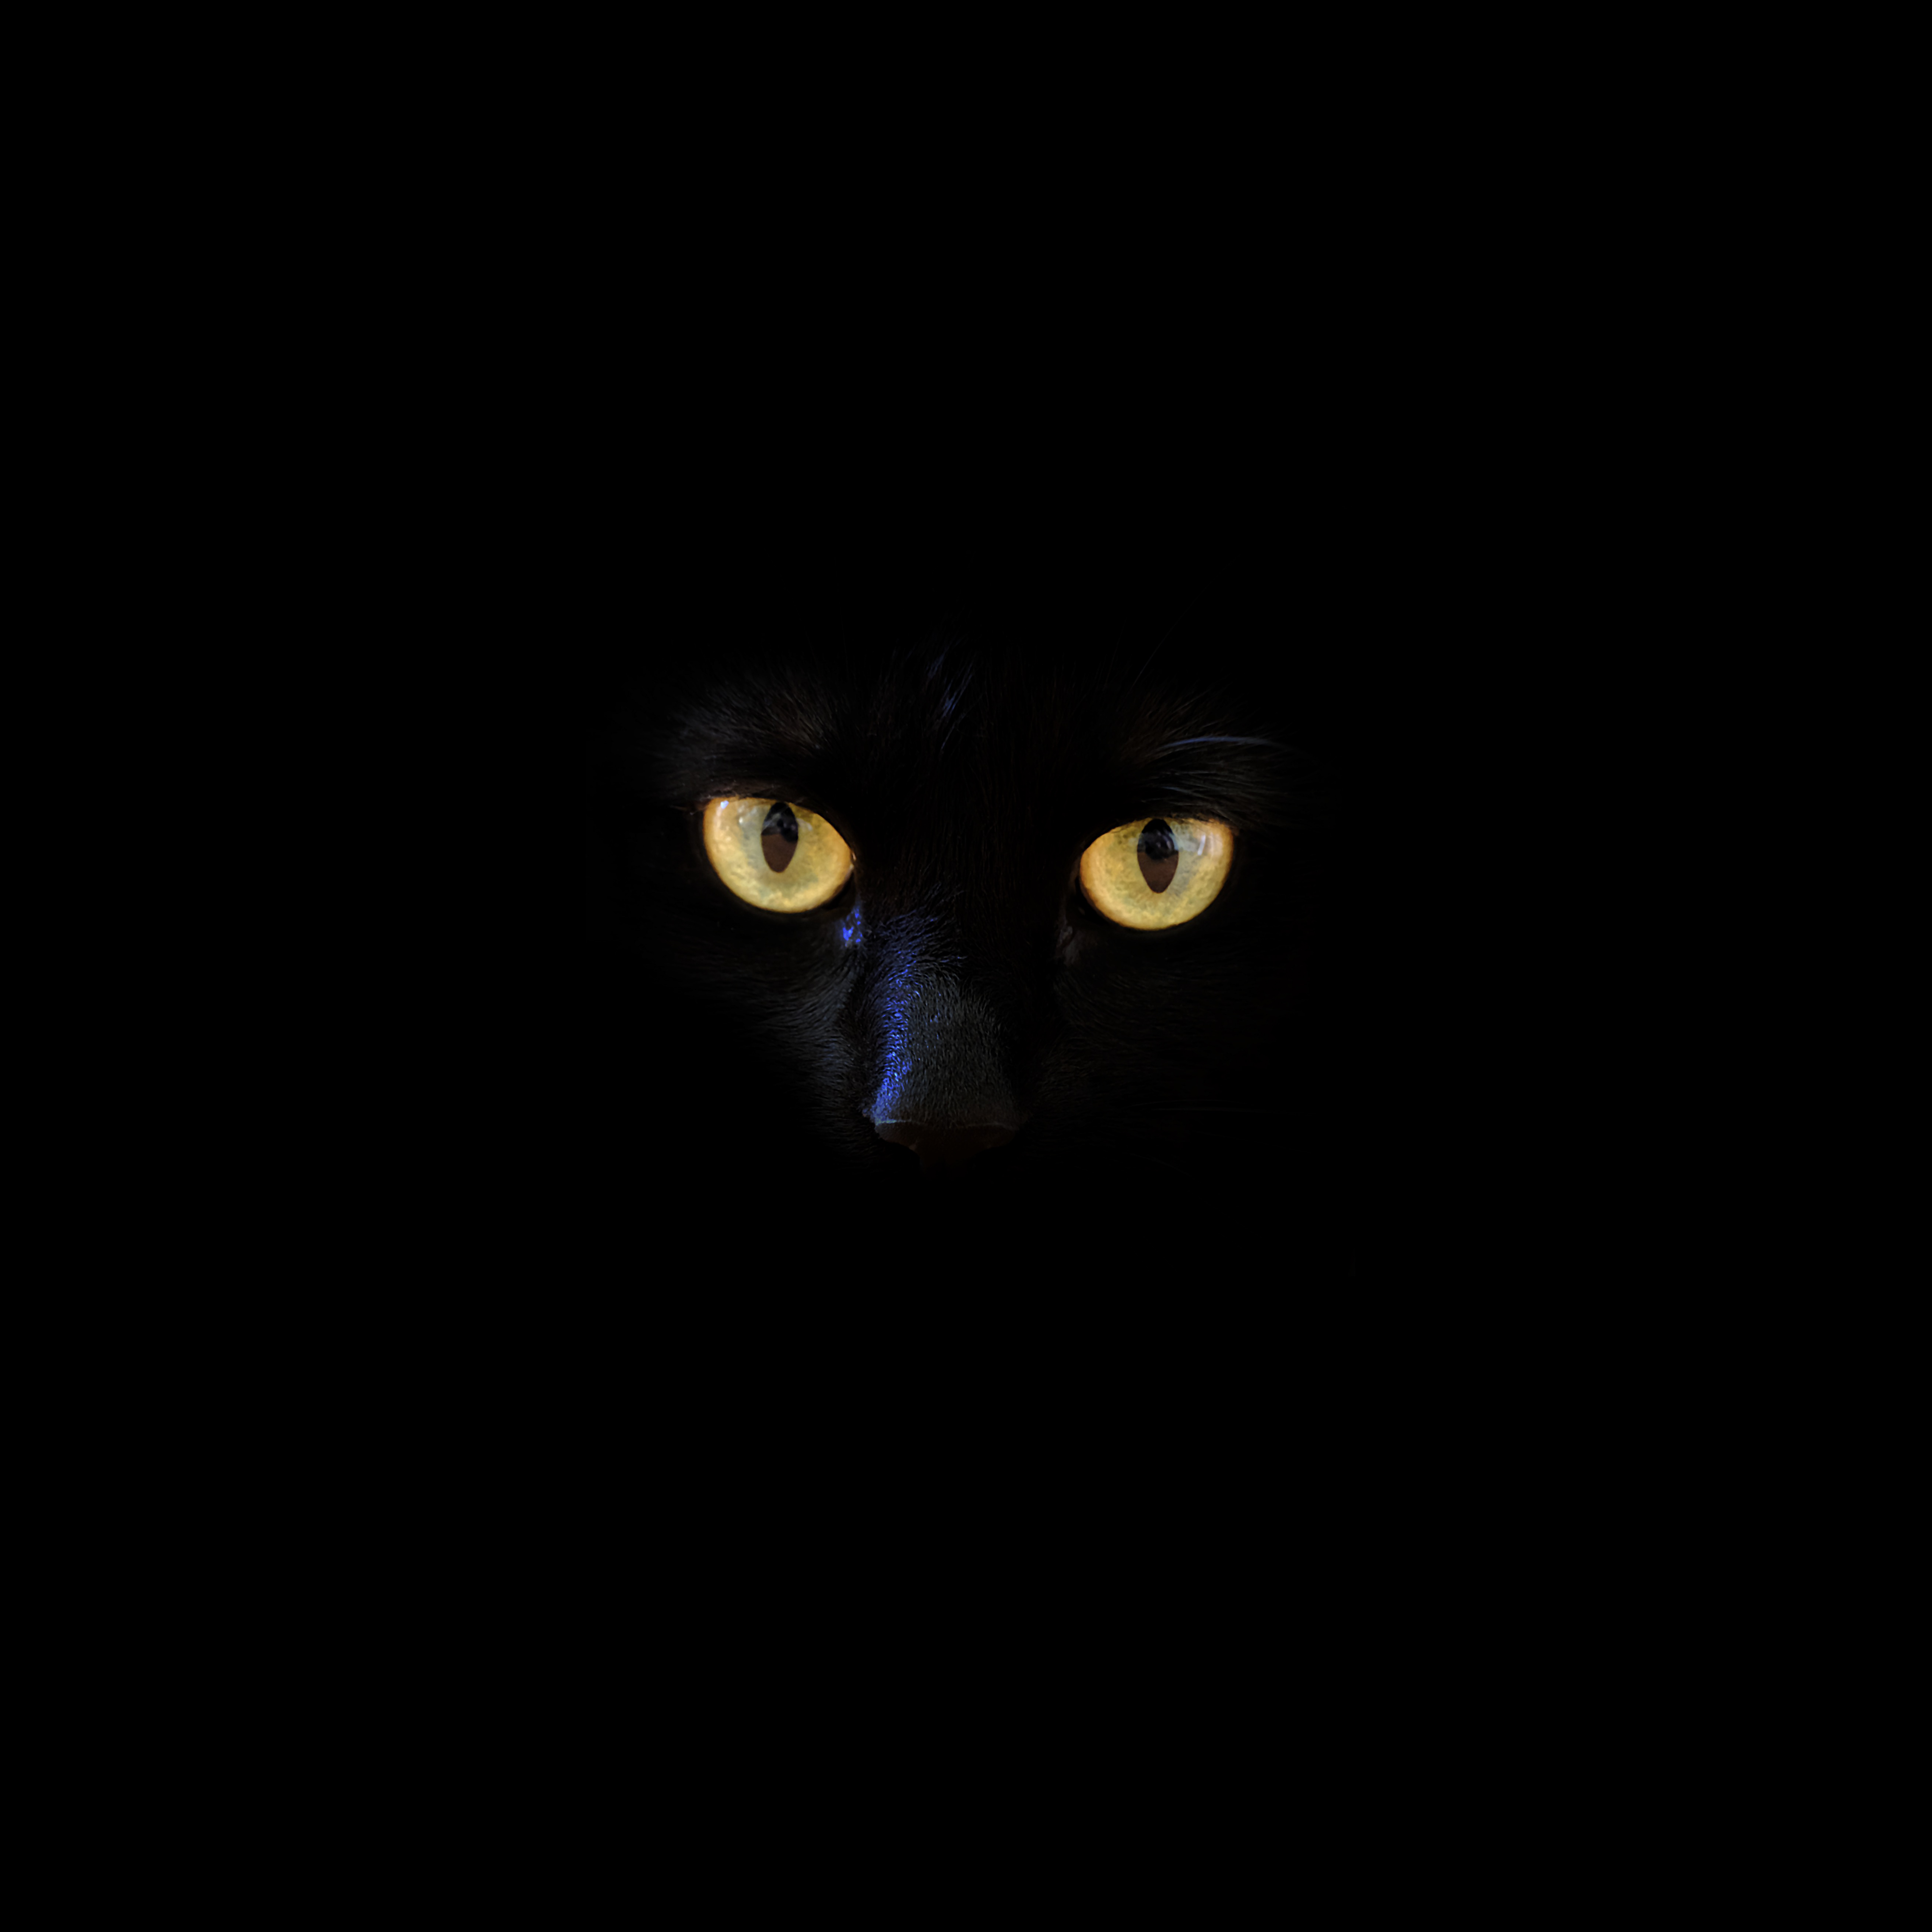 A Black Cat poetry stories